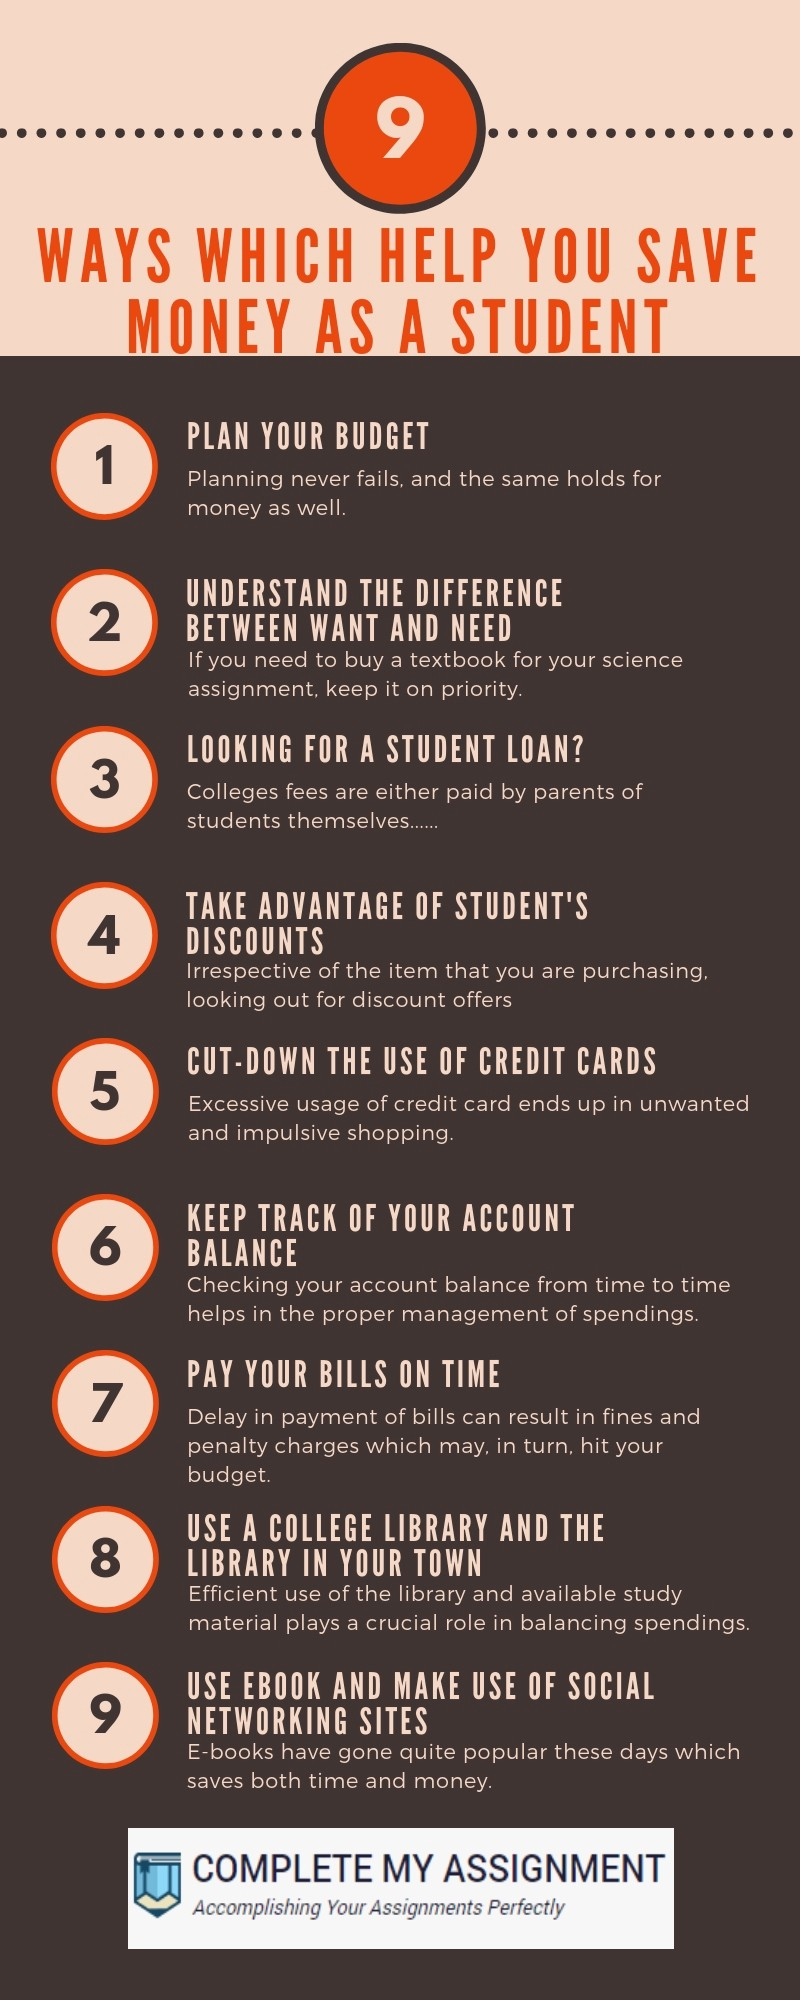 Ways Which Help You Save Money As A Student  Complete My  Here Is A Gathering Of Few Tips And Tricks For College Students That Will  Help Them Save Money